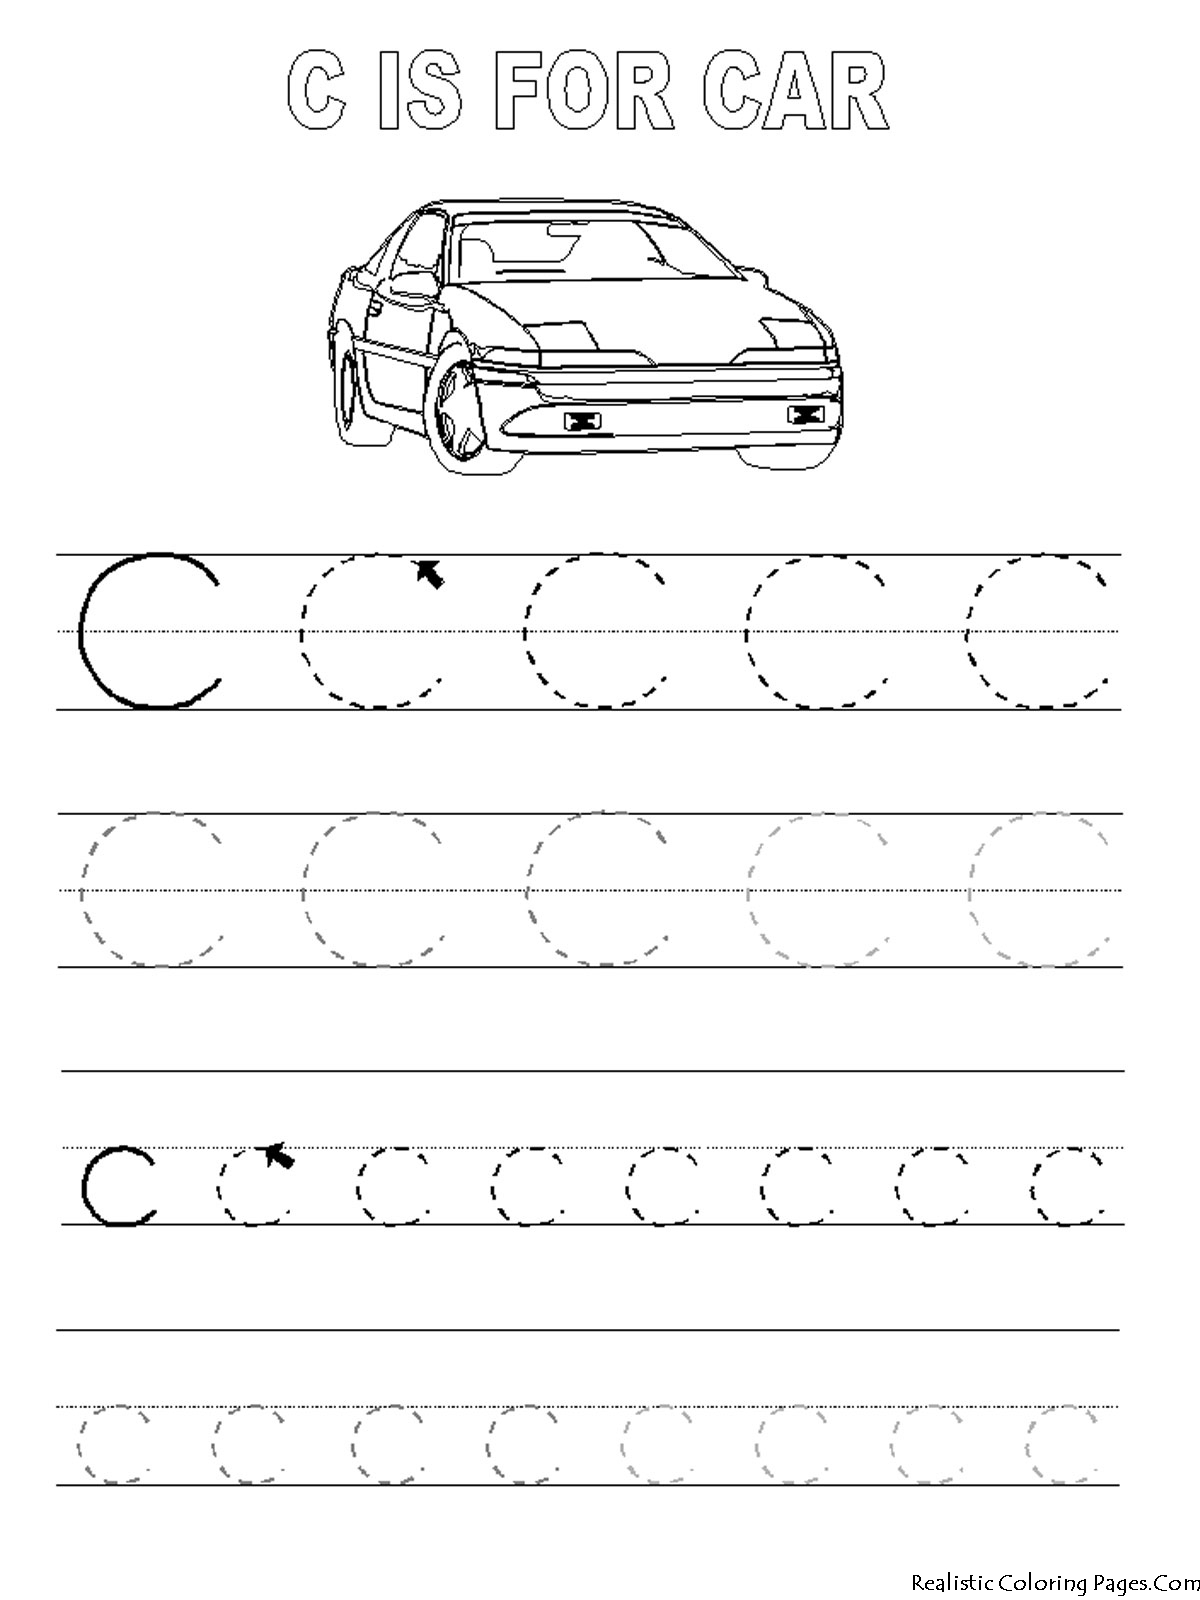 tracing coloring pages - letters alphabet coloring pages realistic